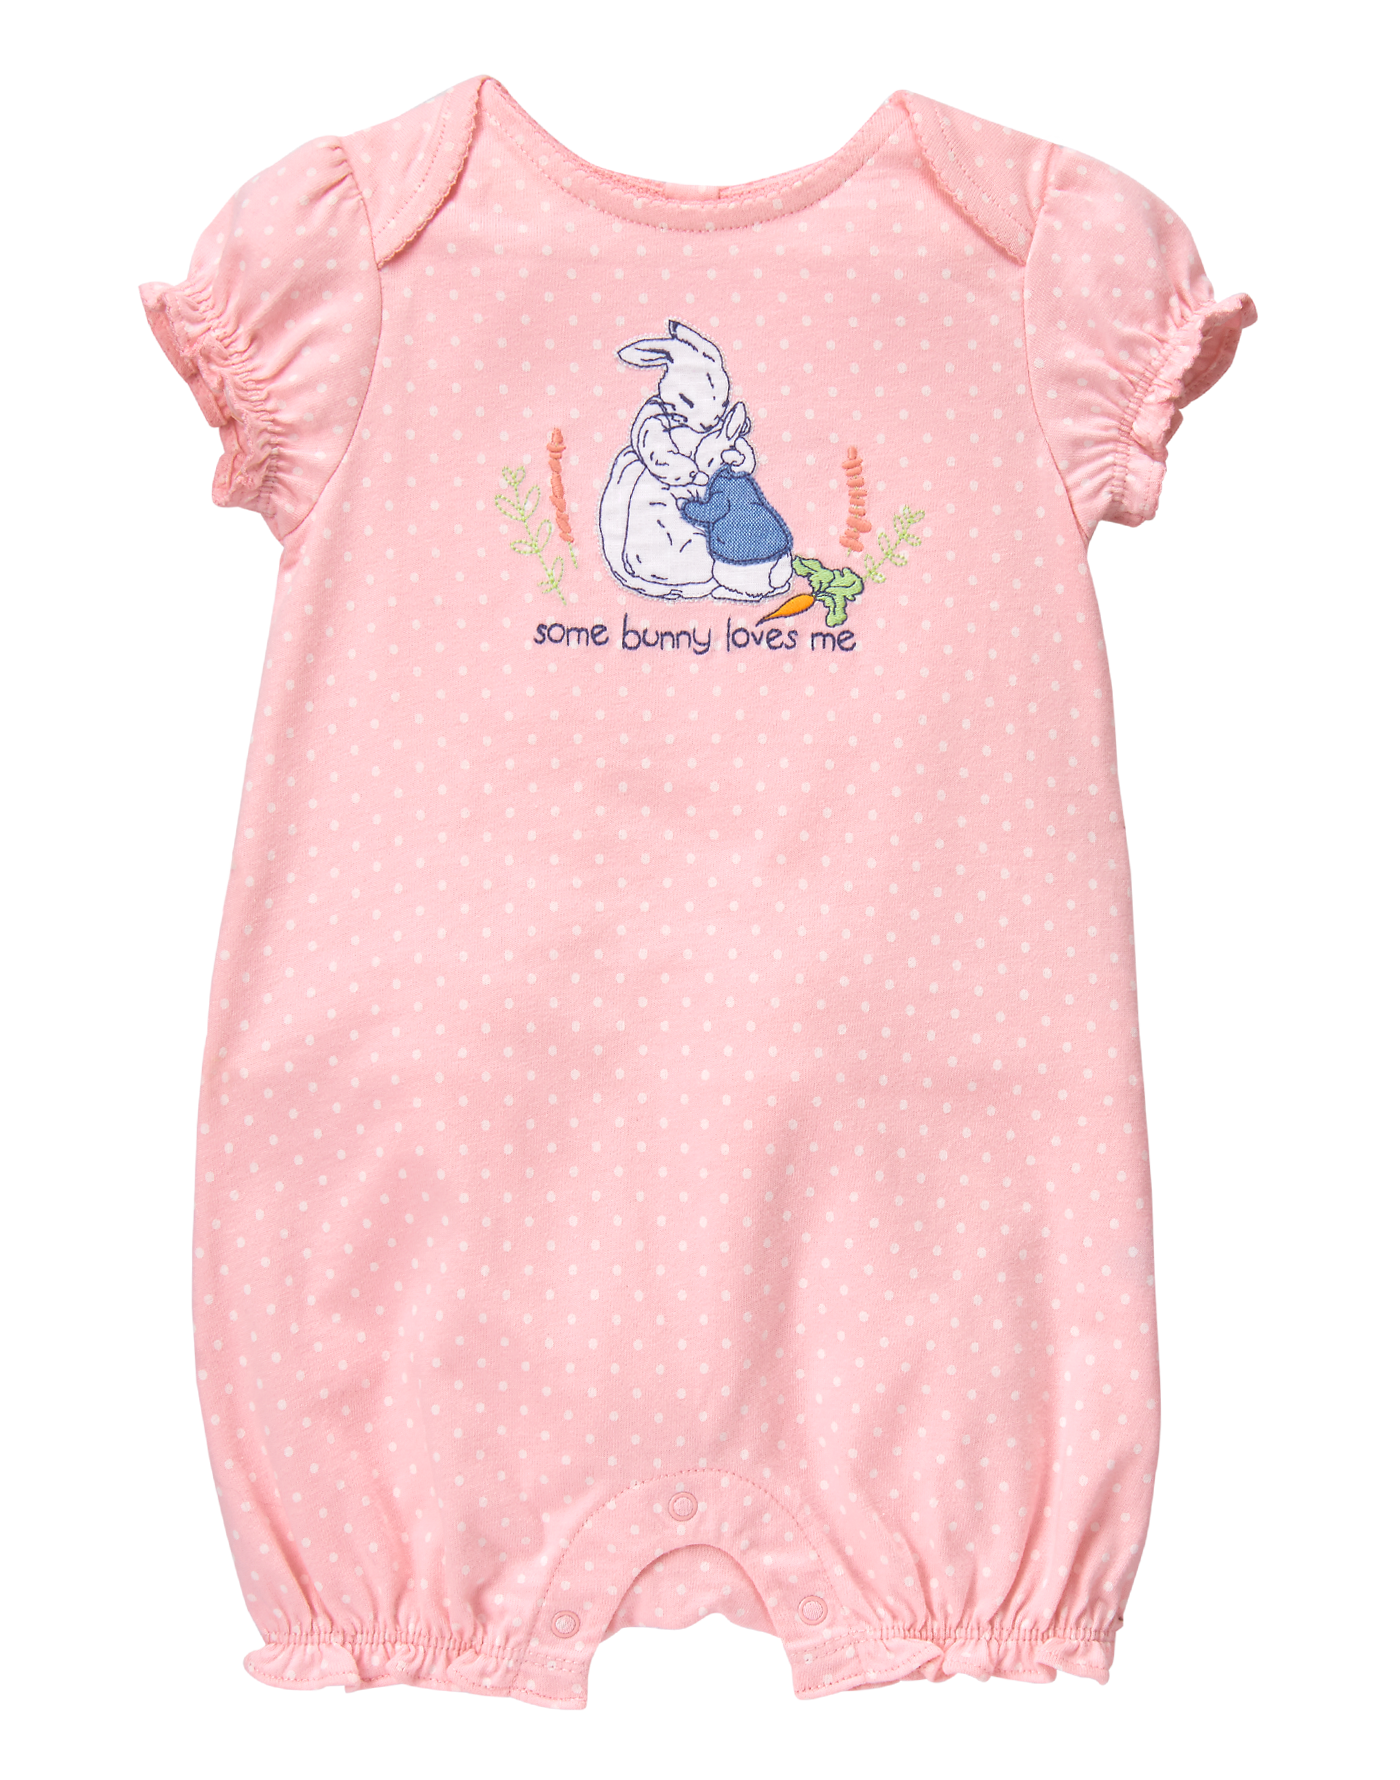 741e3ad2c0c Gymboree Peter Rabbit Collection - Some Bunny Loves Me